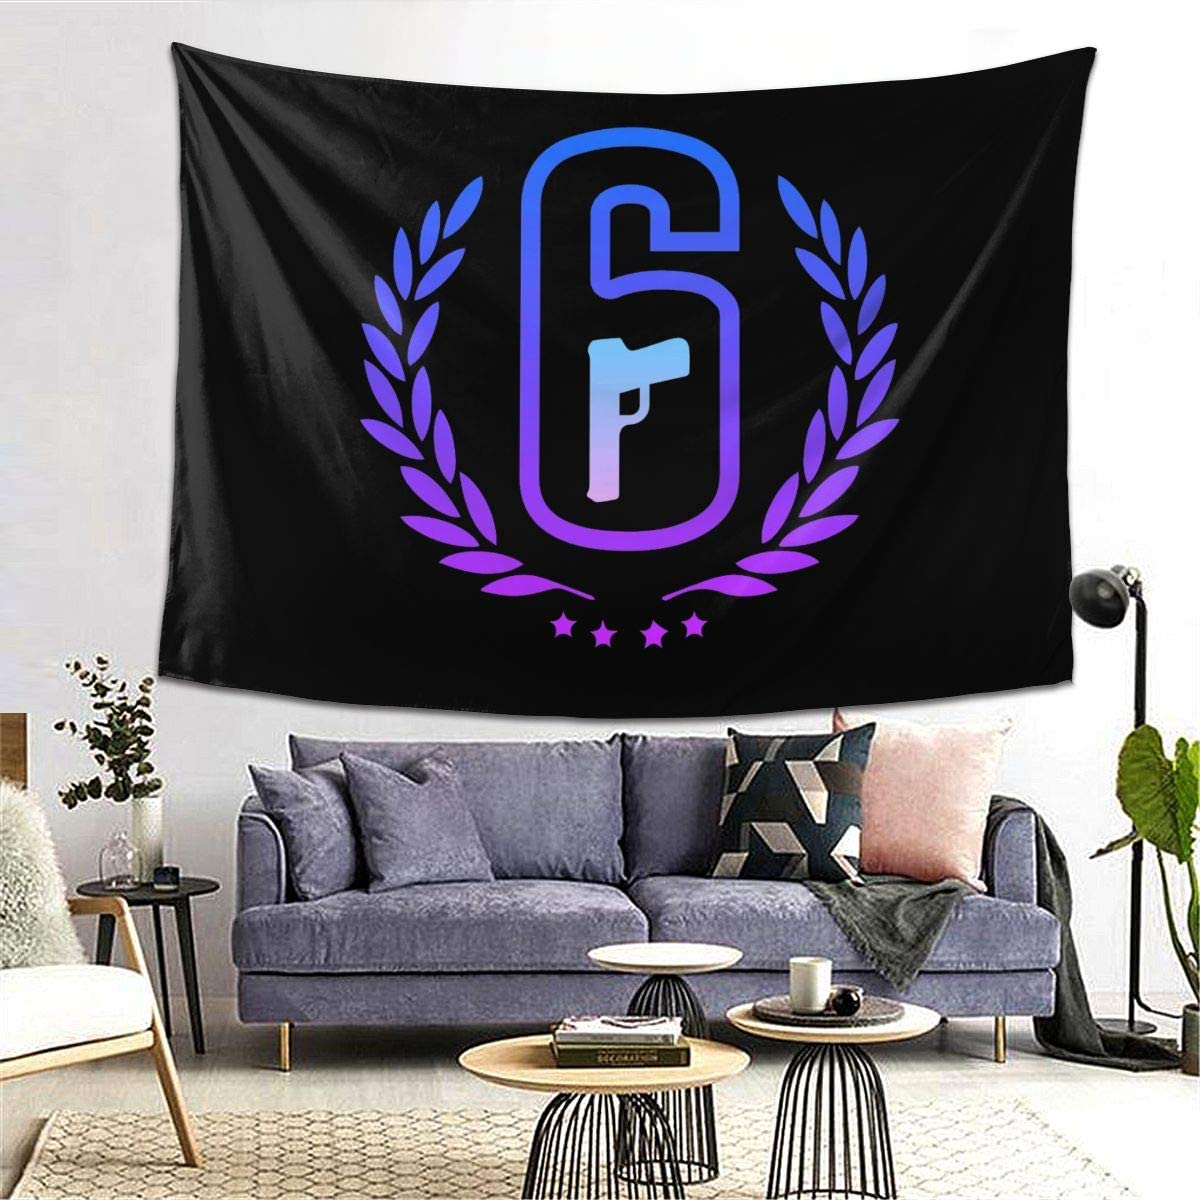 Hidreama Rainbow Six Siege Tapestry 3D Printing Wall Hanging Blanket Wall Art for Living Room Bedroom Home Decor 80×60 Inches